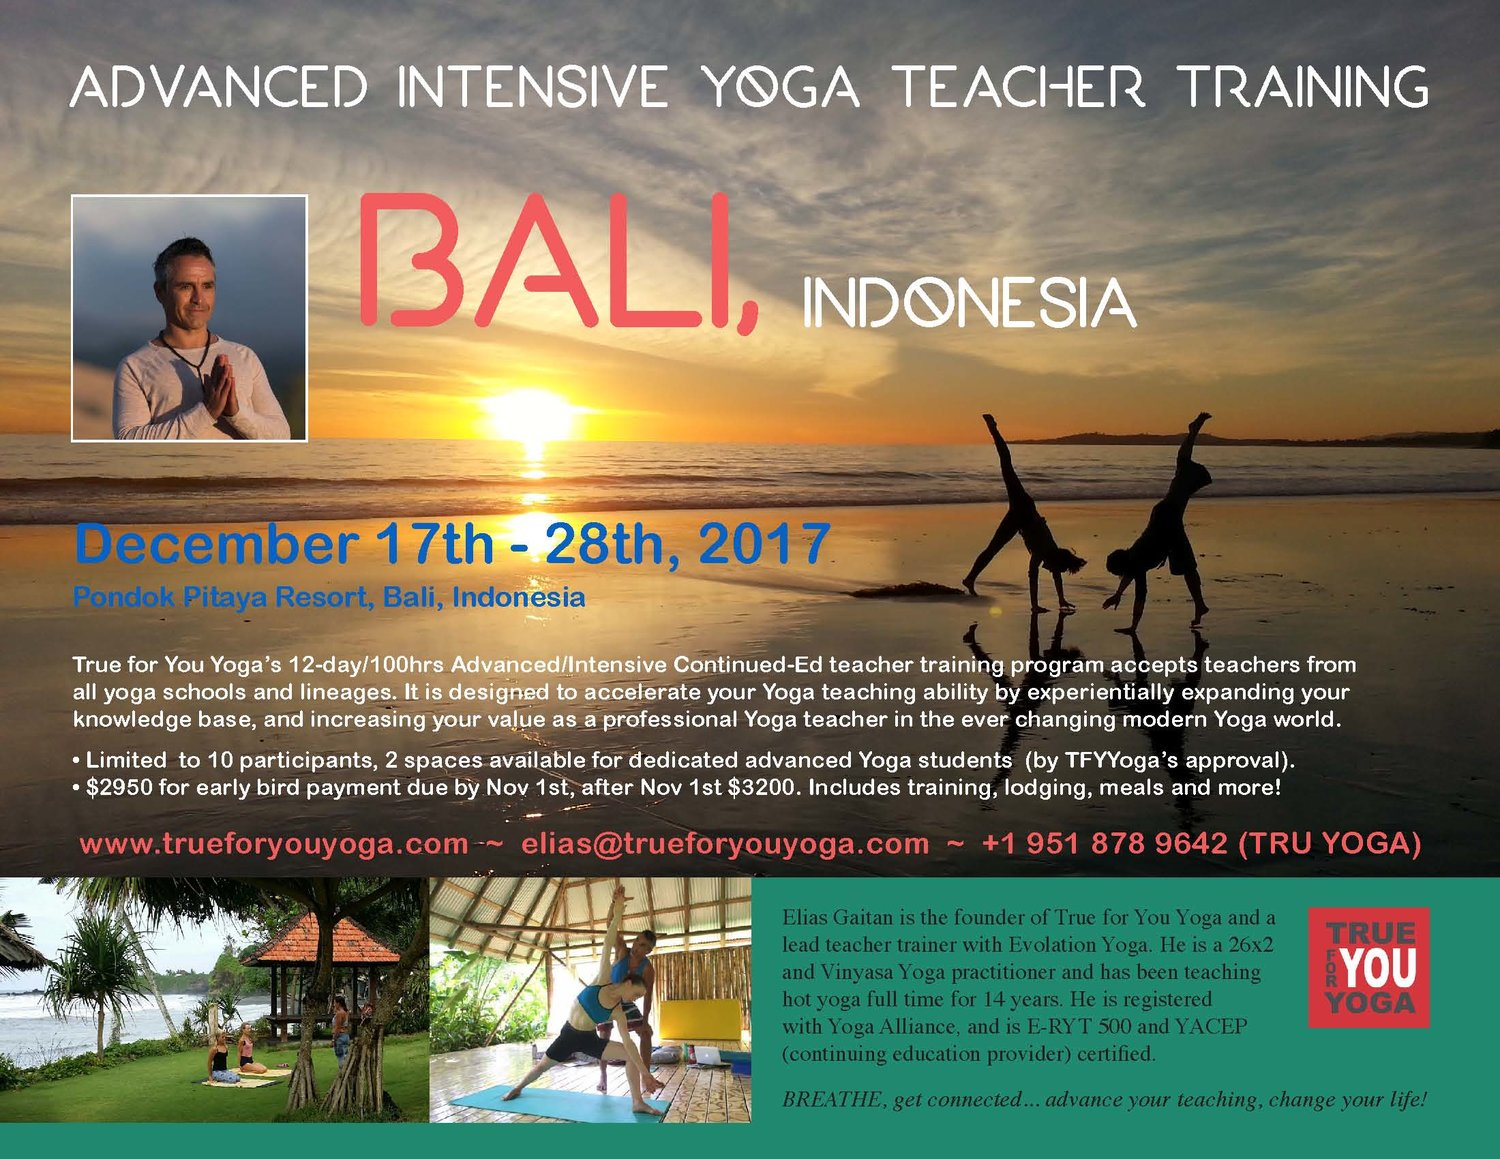 Yoga Connects 2 Day Training With >> Advanced Intensive Yoga Teacher Training True For You Yoga